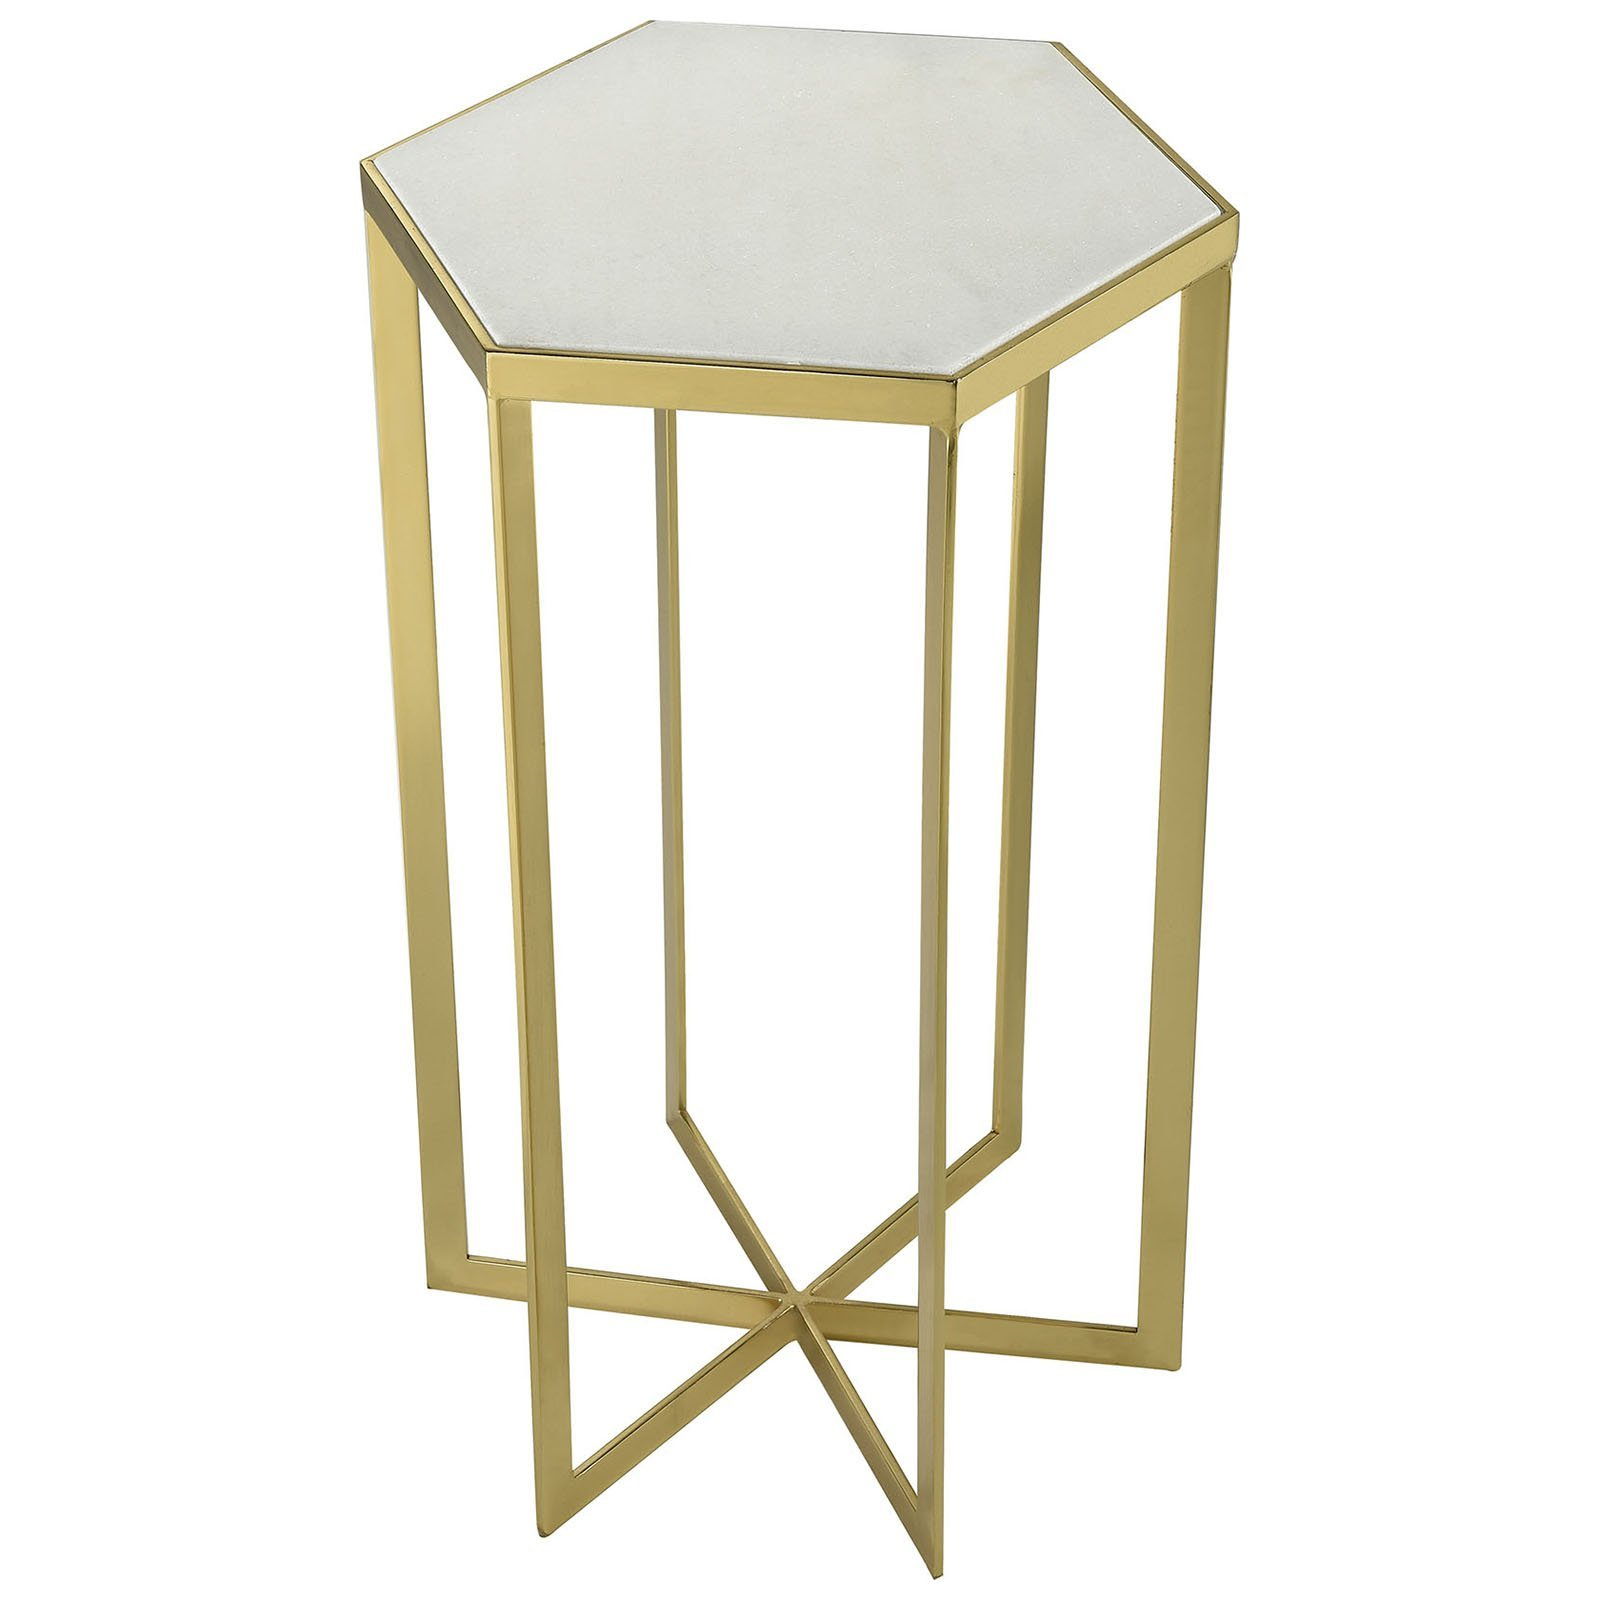 halter contemporary accent tables gold fratantoni lifestyles marble table plated metal with genuine white top half circle dining commercial tablecloths floral tablecloth small